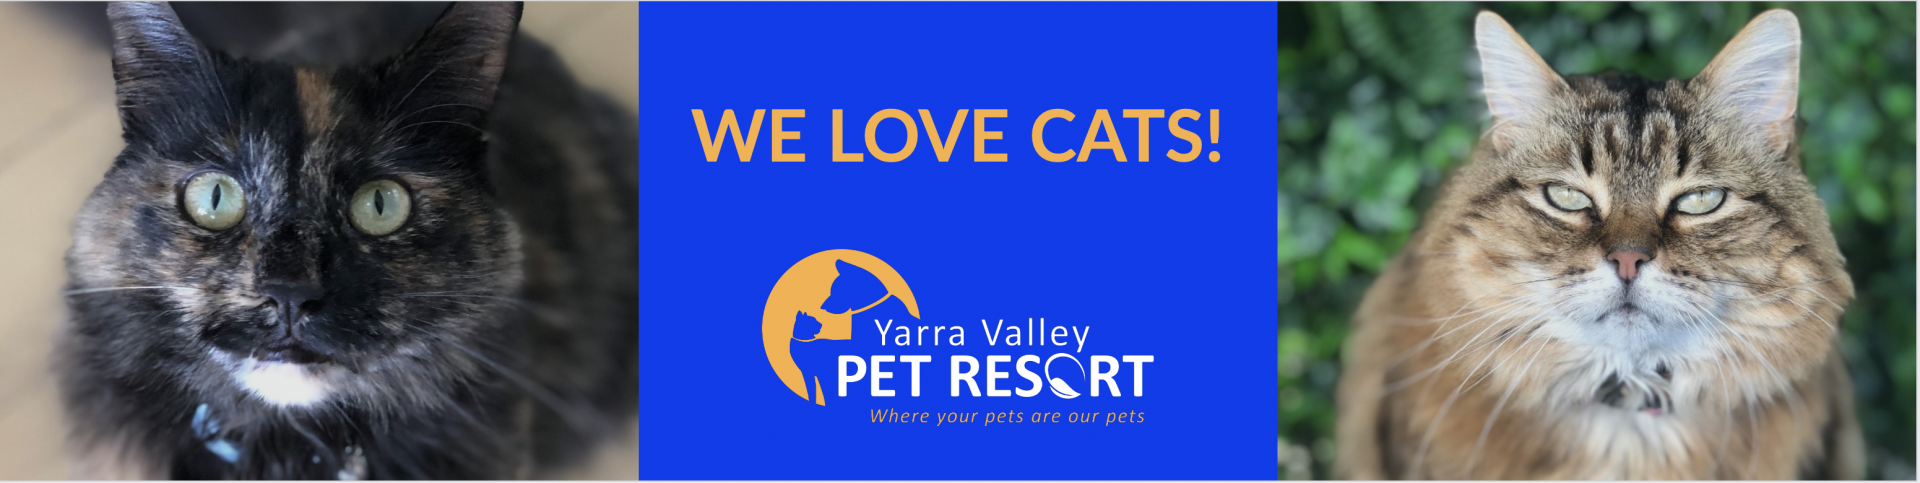 Cats Cats Cats – We Love Cats At Yarra Valley Pet Resort Healesville